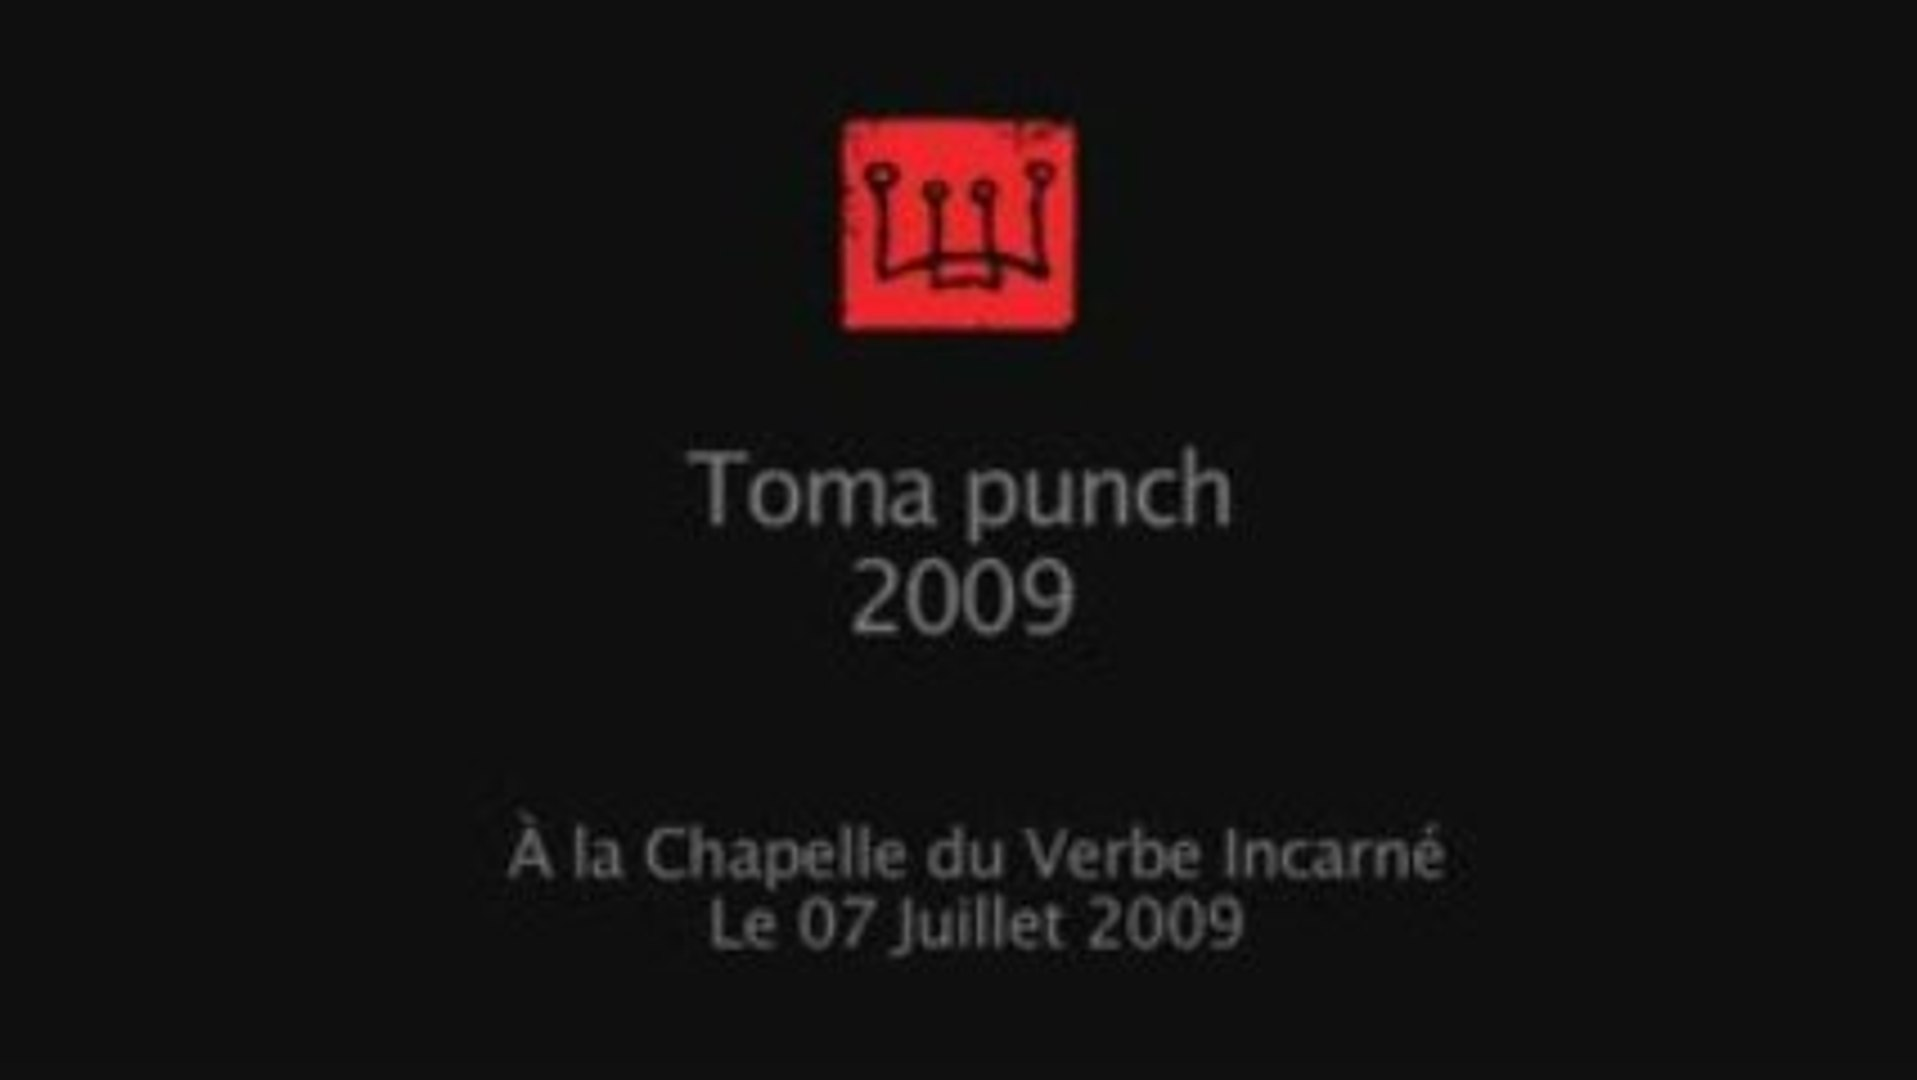 toma punch 2009